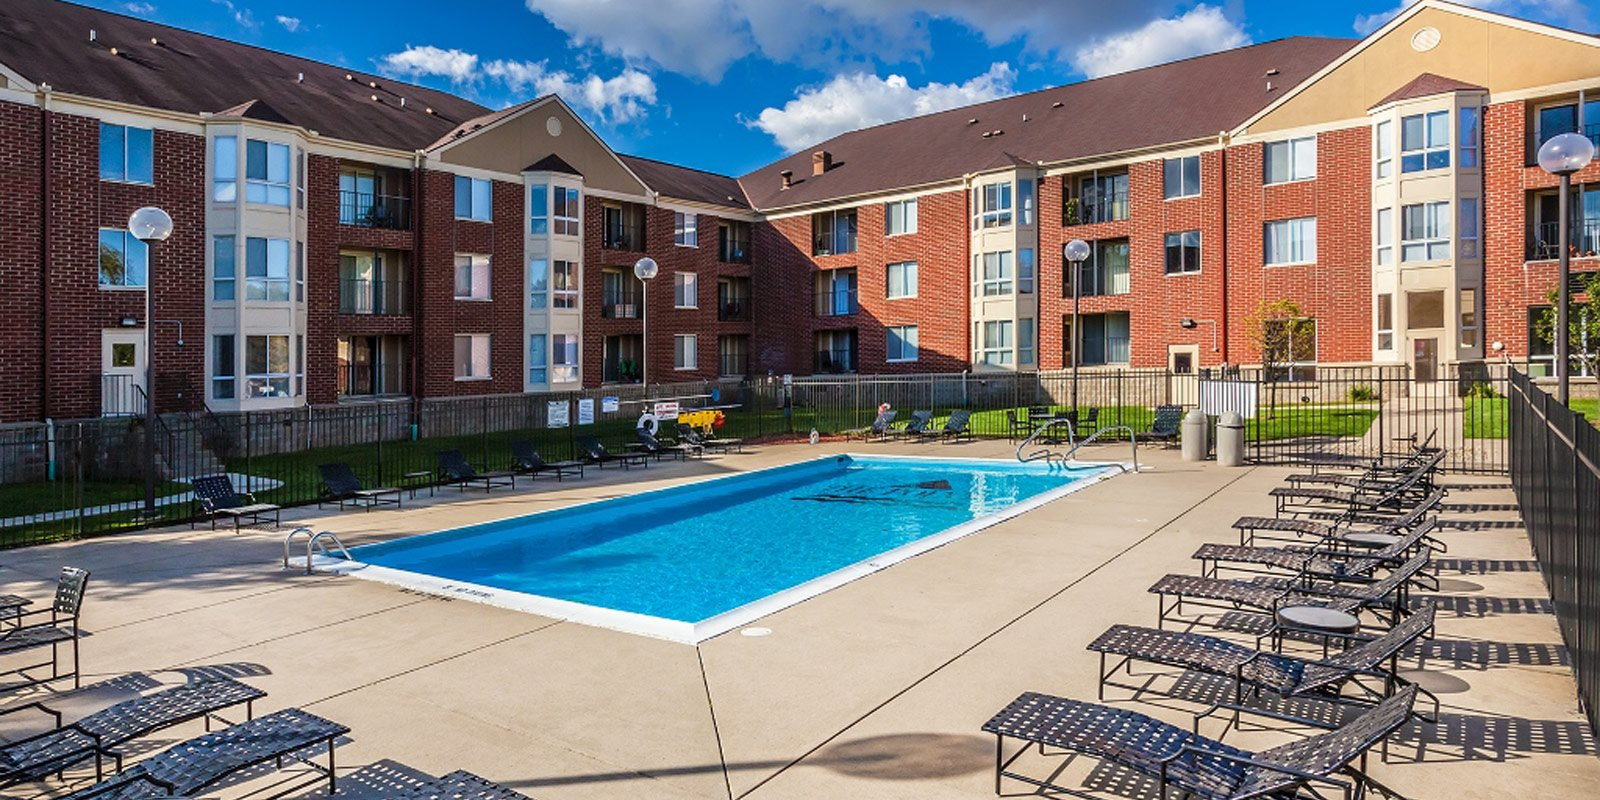 Pool Side Relaxing Area at The Pointe at St. Joseph Apartments, South Bend, IN, 46617